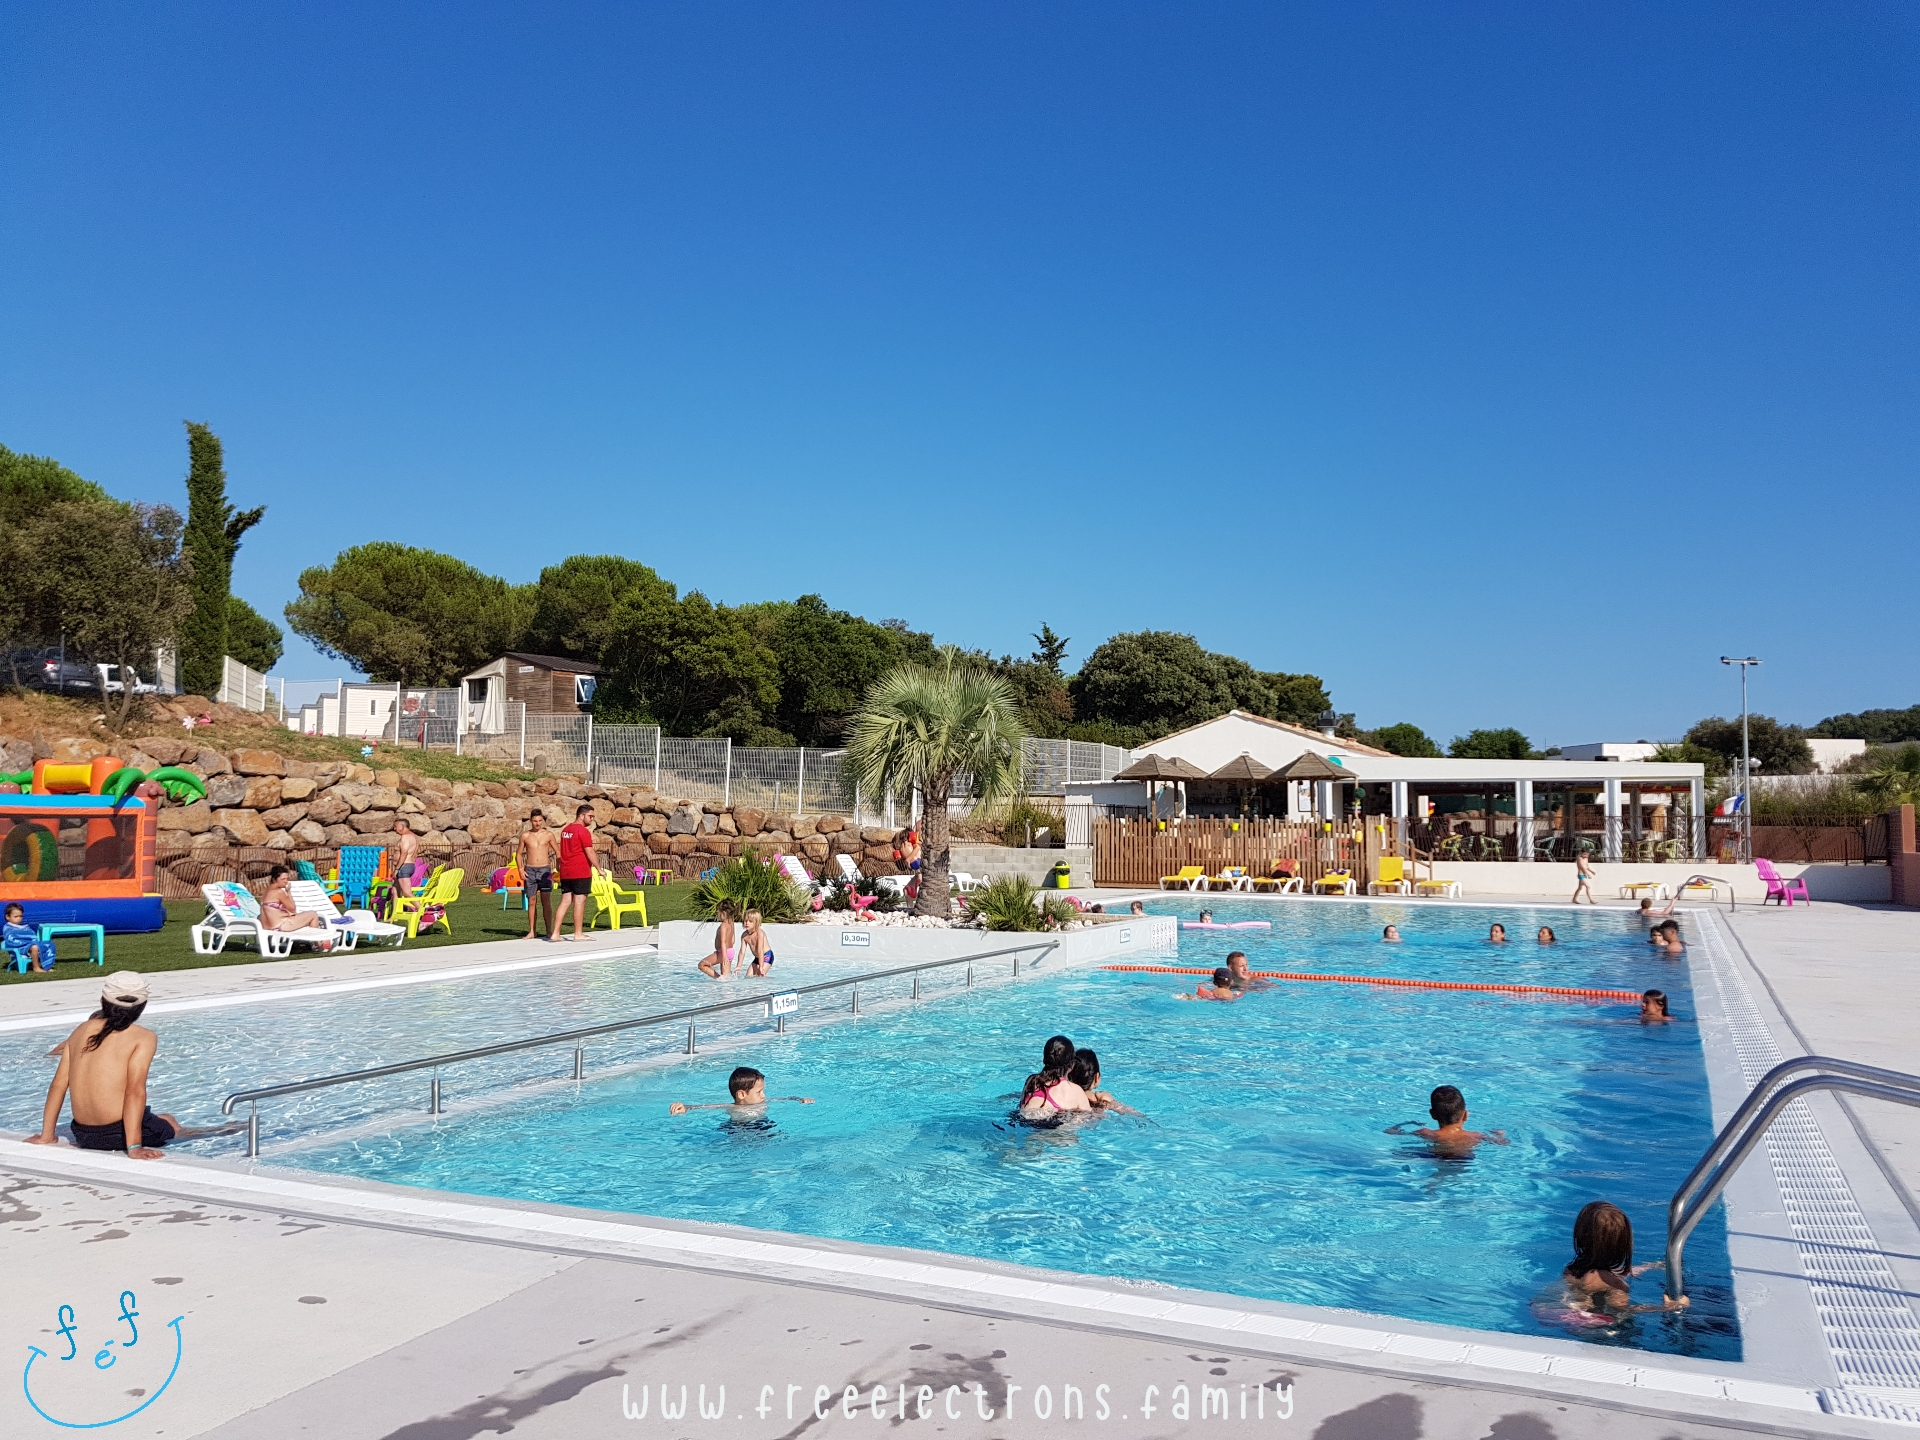 A not-so-full-of-people swimming pool divided in 3 areas, including a kiddie pool, under a summer clear blue sky.  #FreeElectrons.Family - camping road trip Europe, Agde France.